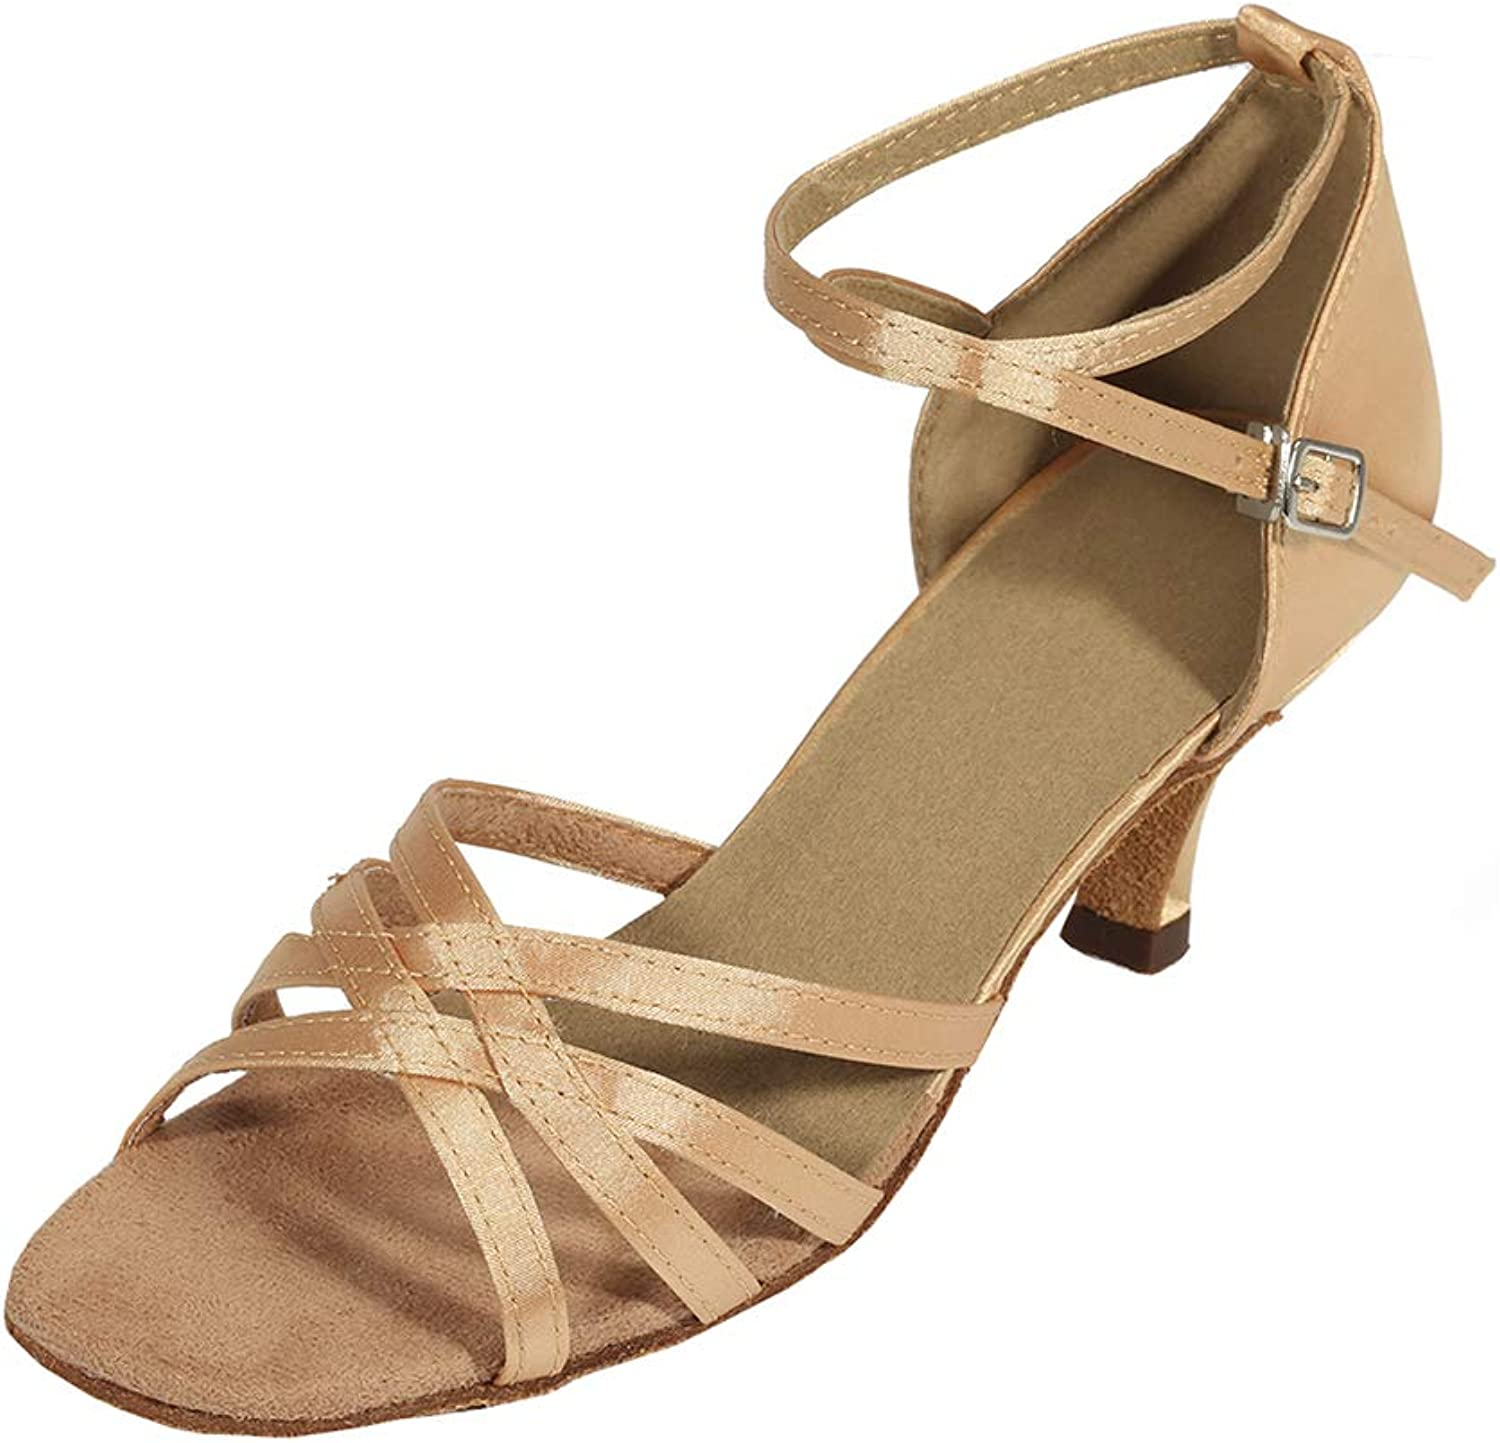 Cygnus Women Dance shoes Latin Salsa Tango Practice Ballroom Dance shoes with 2.5  Heel Suede sole 801 Brown